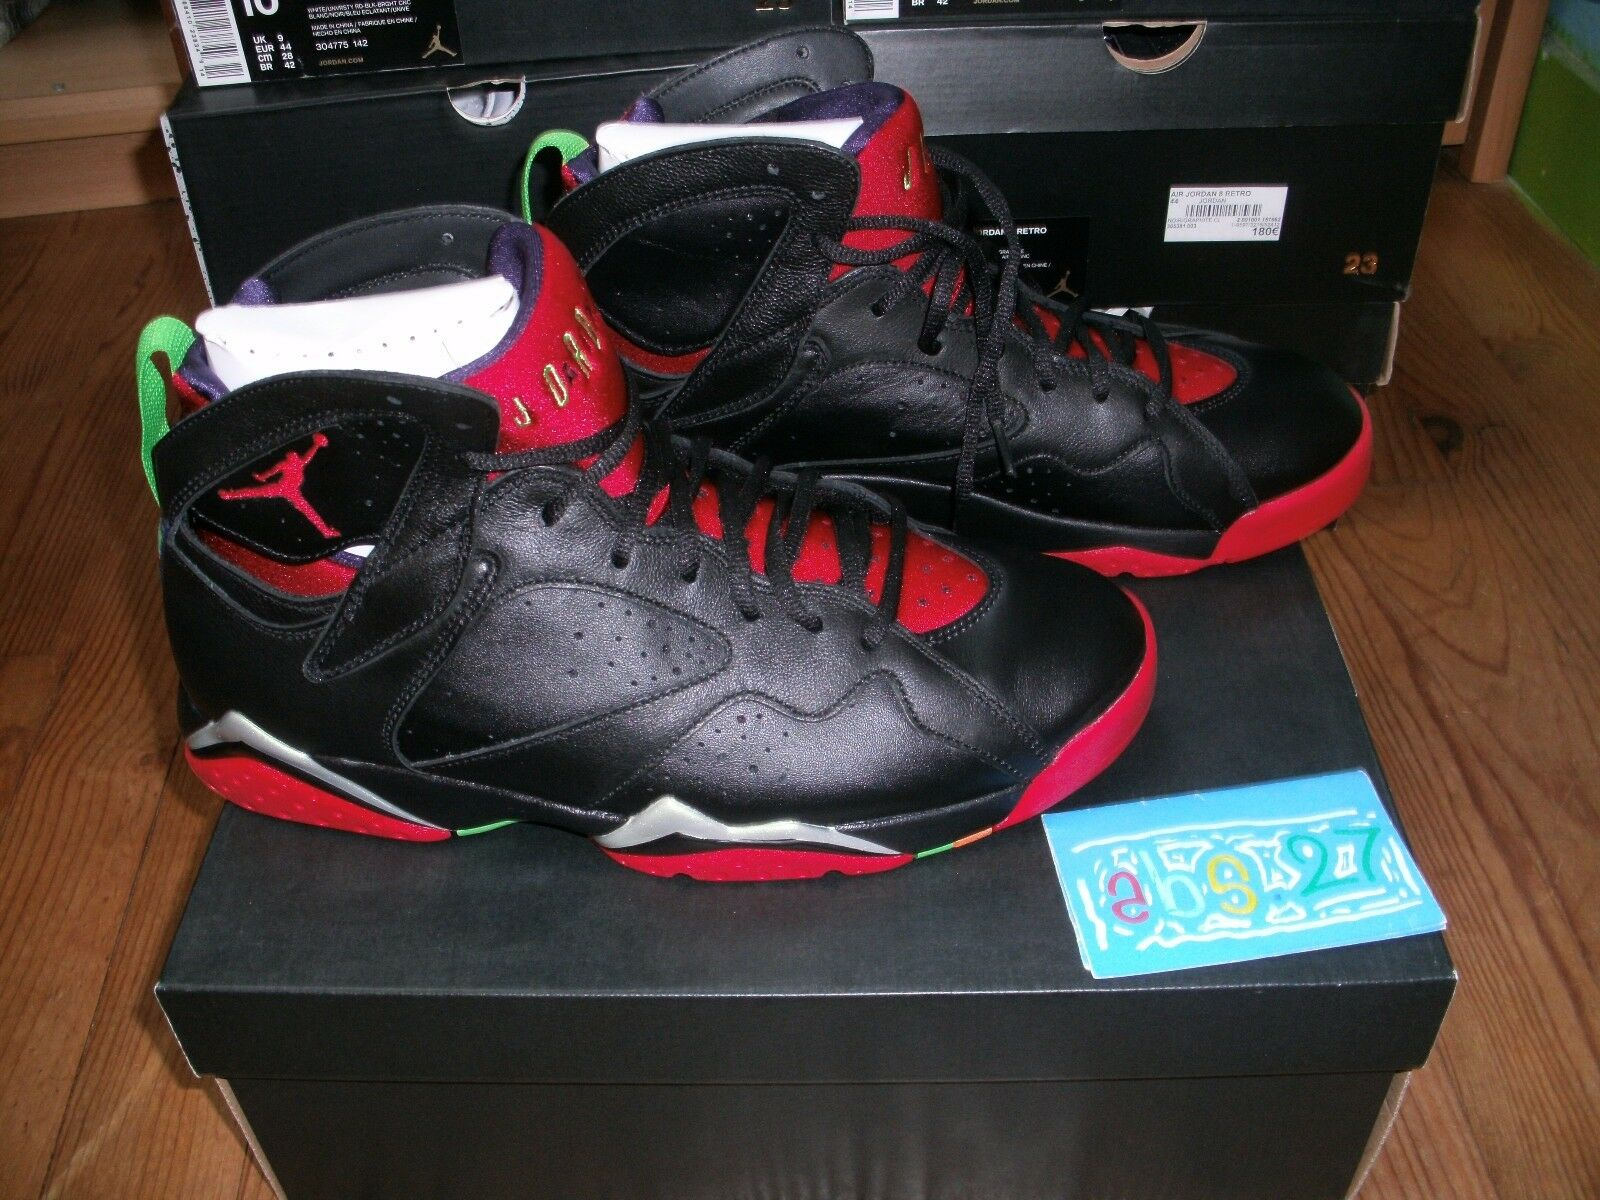 NIKE NIKE NIKE air Jordan 7 VII retro Marvin the martian 2015 44 10us 9Uk DS nero rosso 561194